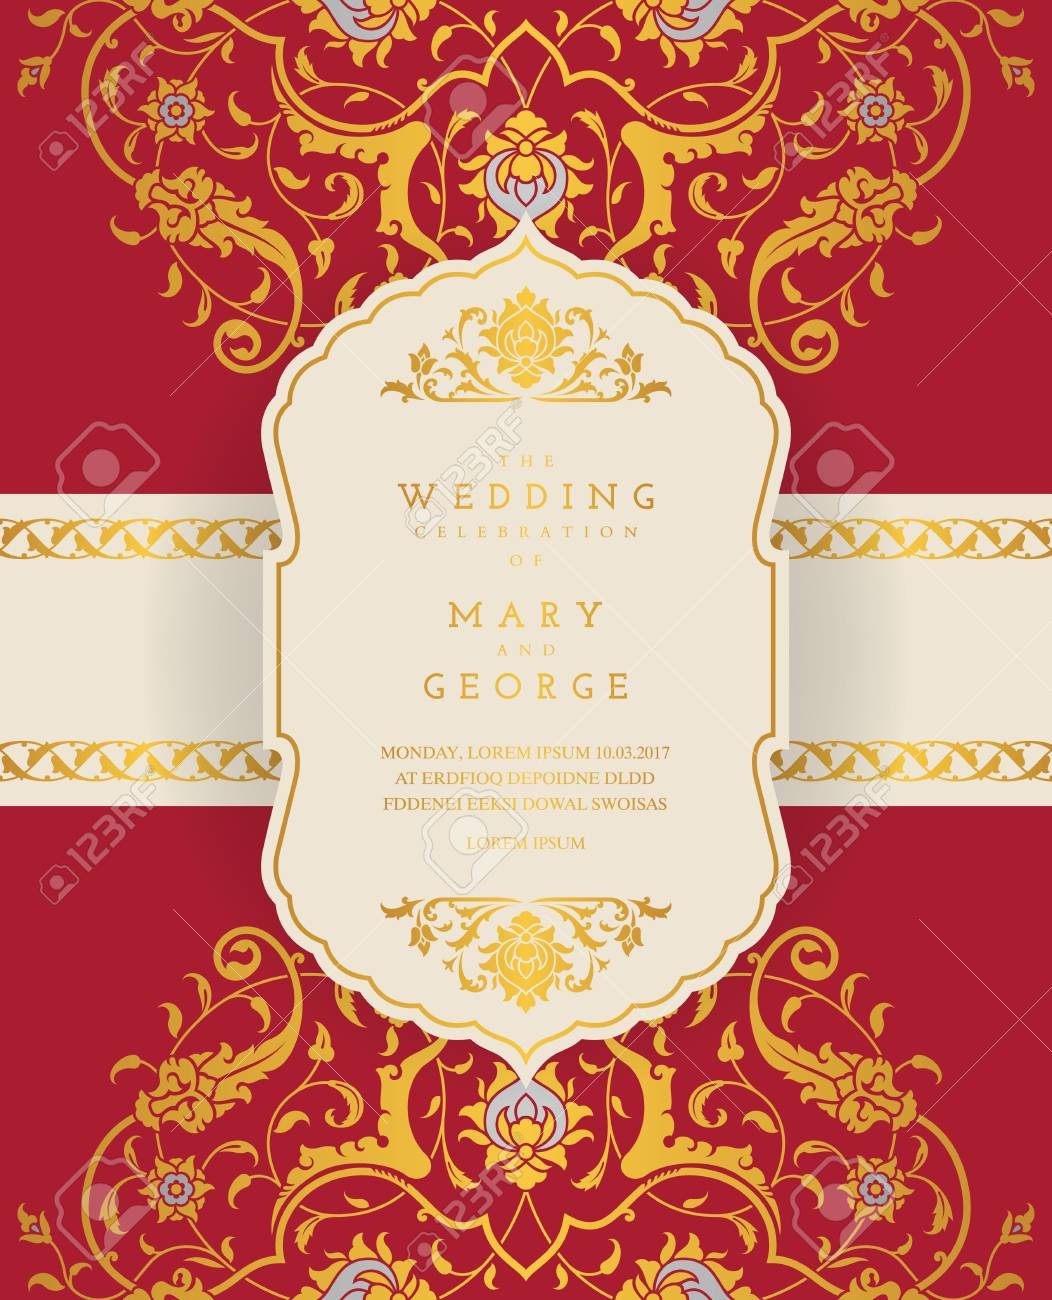 vintage wedding invitation card template with floral background royalty free cliparts vectors and stock illustration image 84288942